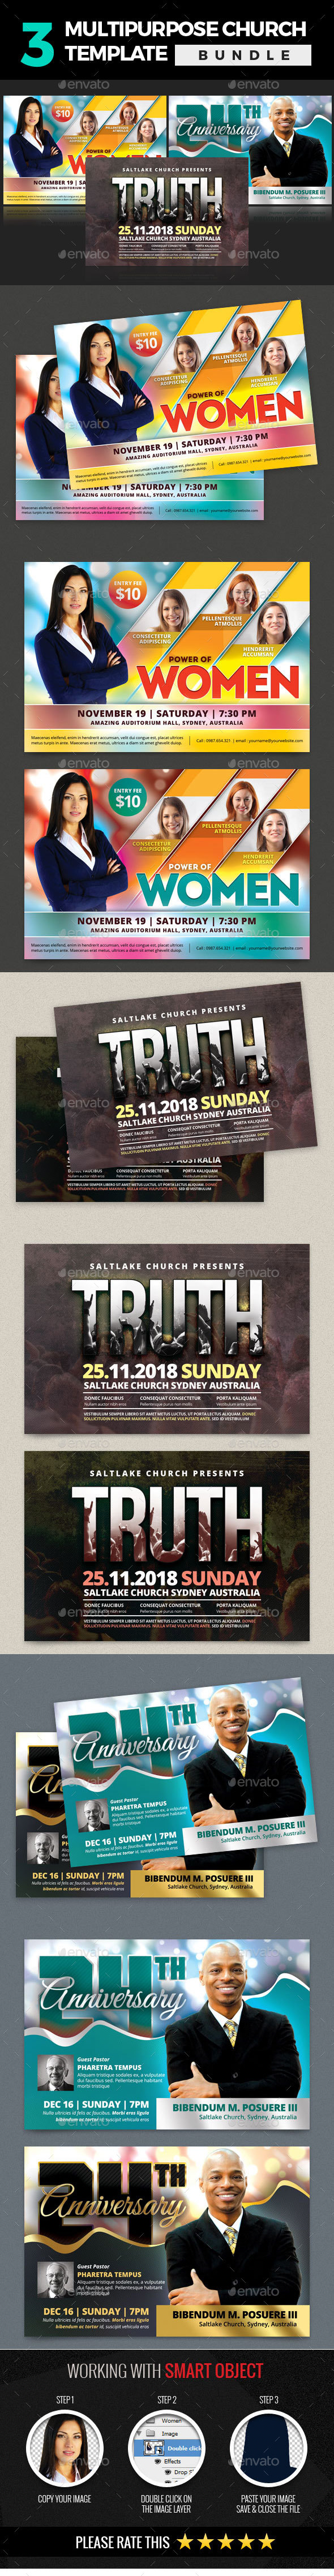 3 In 1 Multipurpose Church Template Bundle - Church Flyers